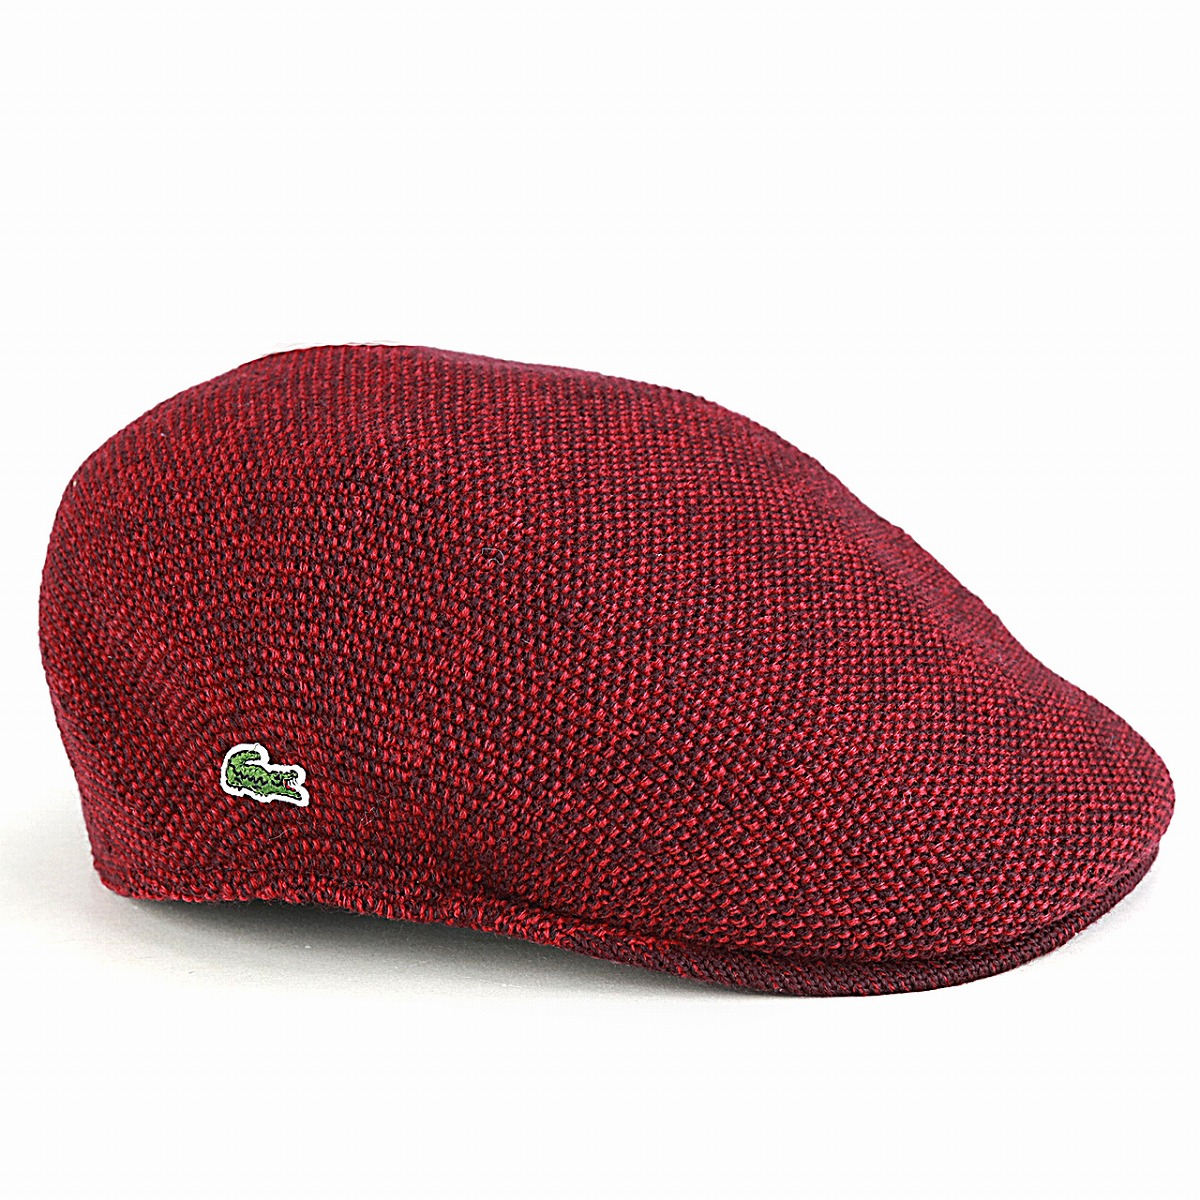 9d6f088c83 Present hat mail order of the Lacoste hunting cap knit LACOSTE men hat Shin  pull Lady's size adjustable thermostat knit fashion brand crocodile 58cm ...